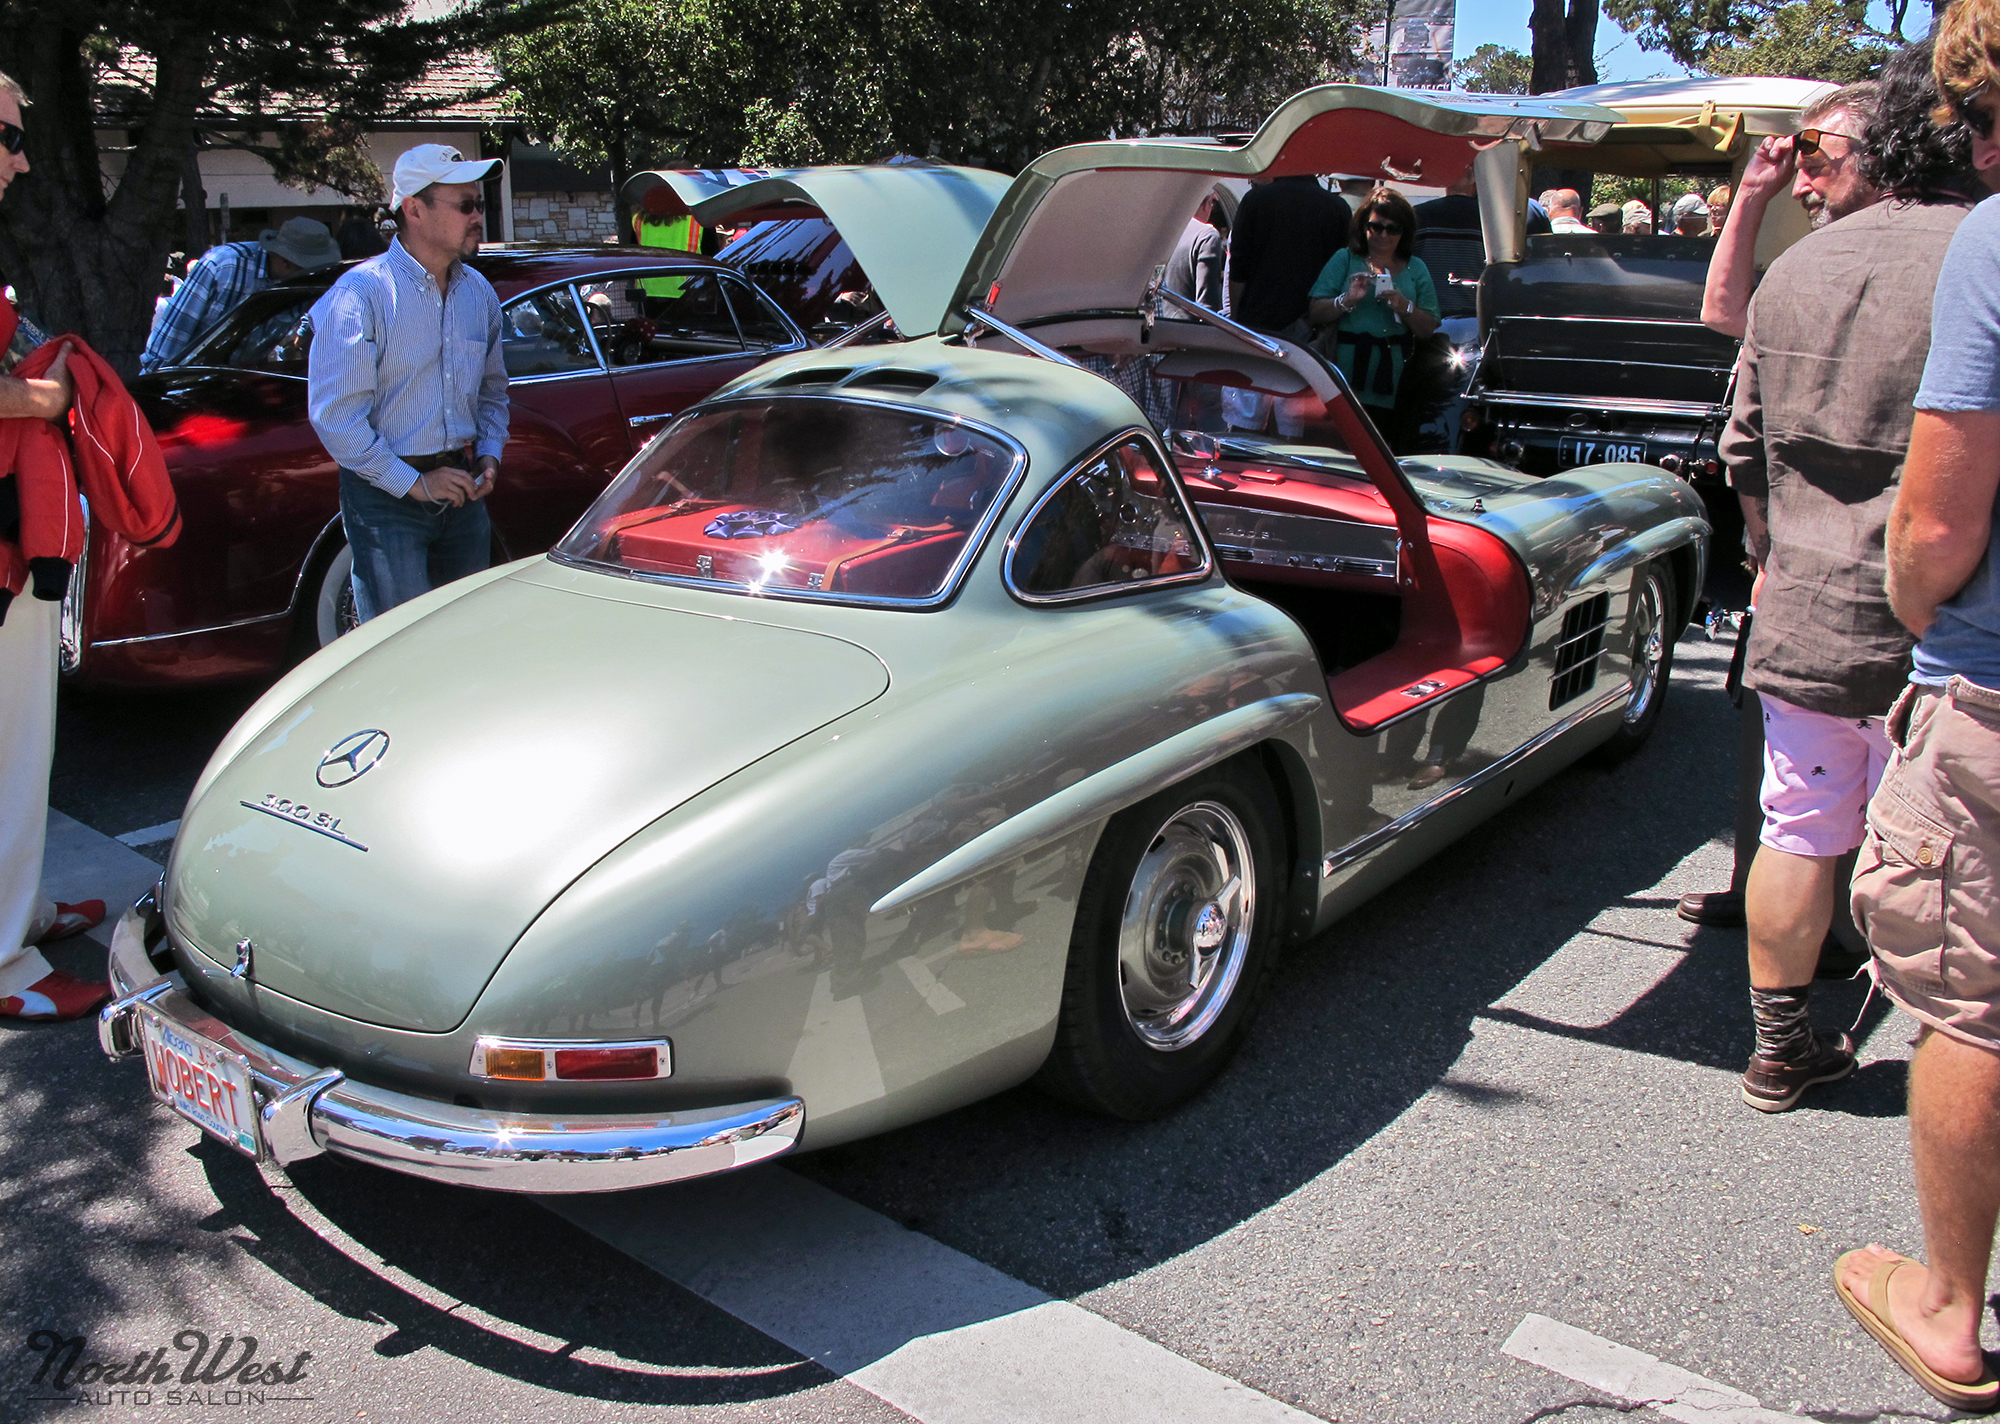 NorthWest Auto Salon Pebble Beach Monterey Car weekend